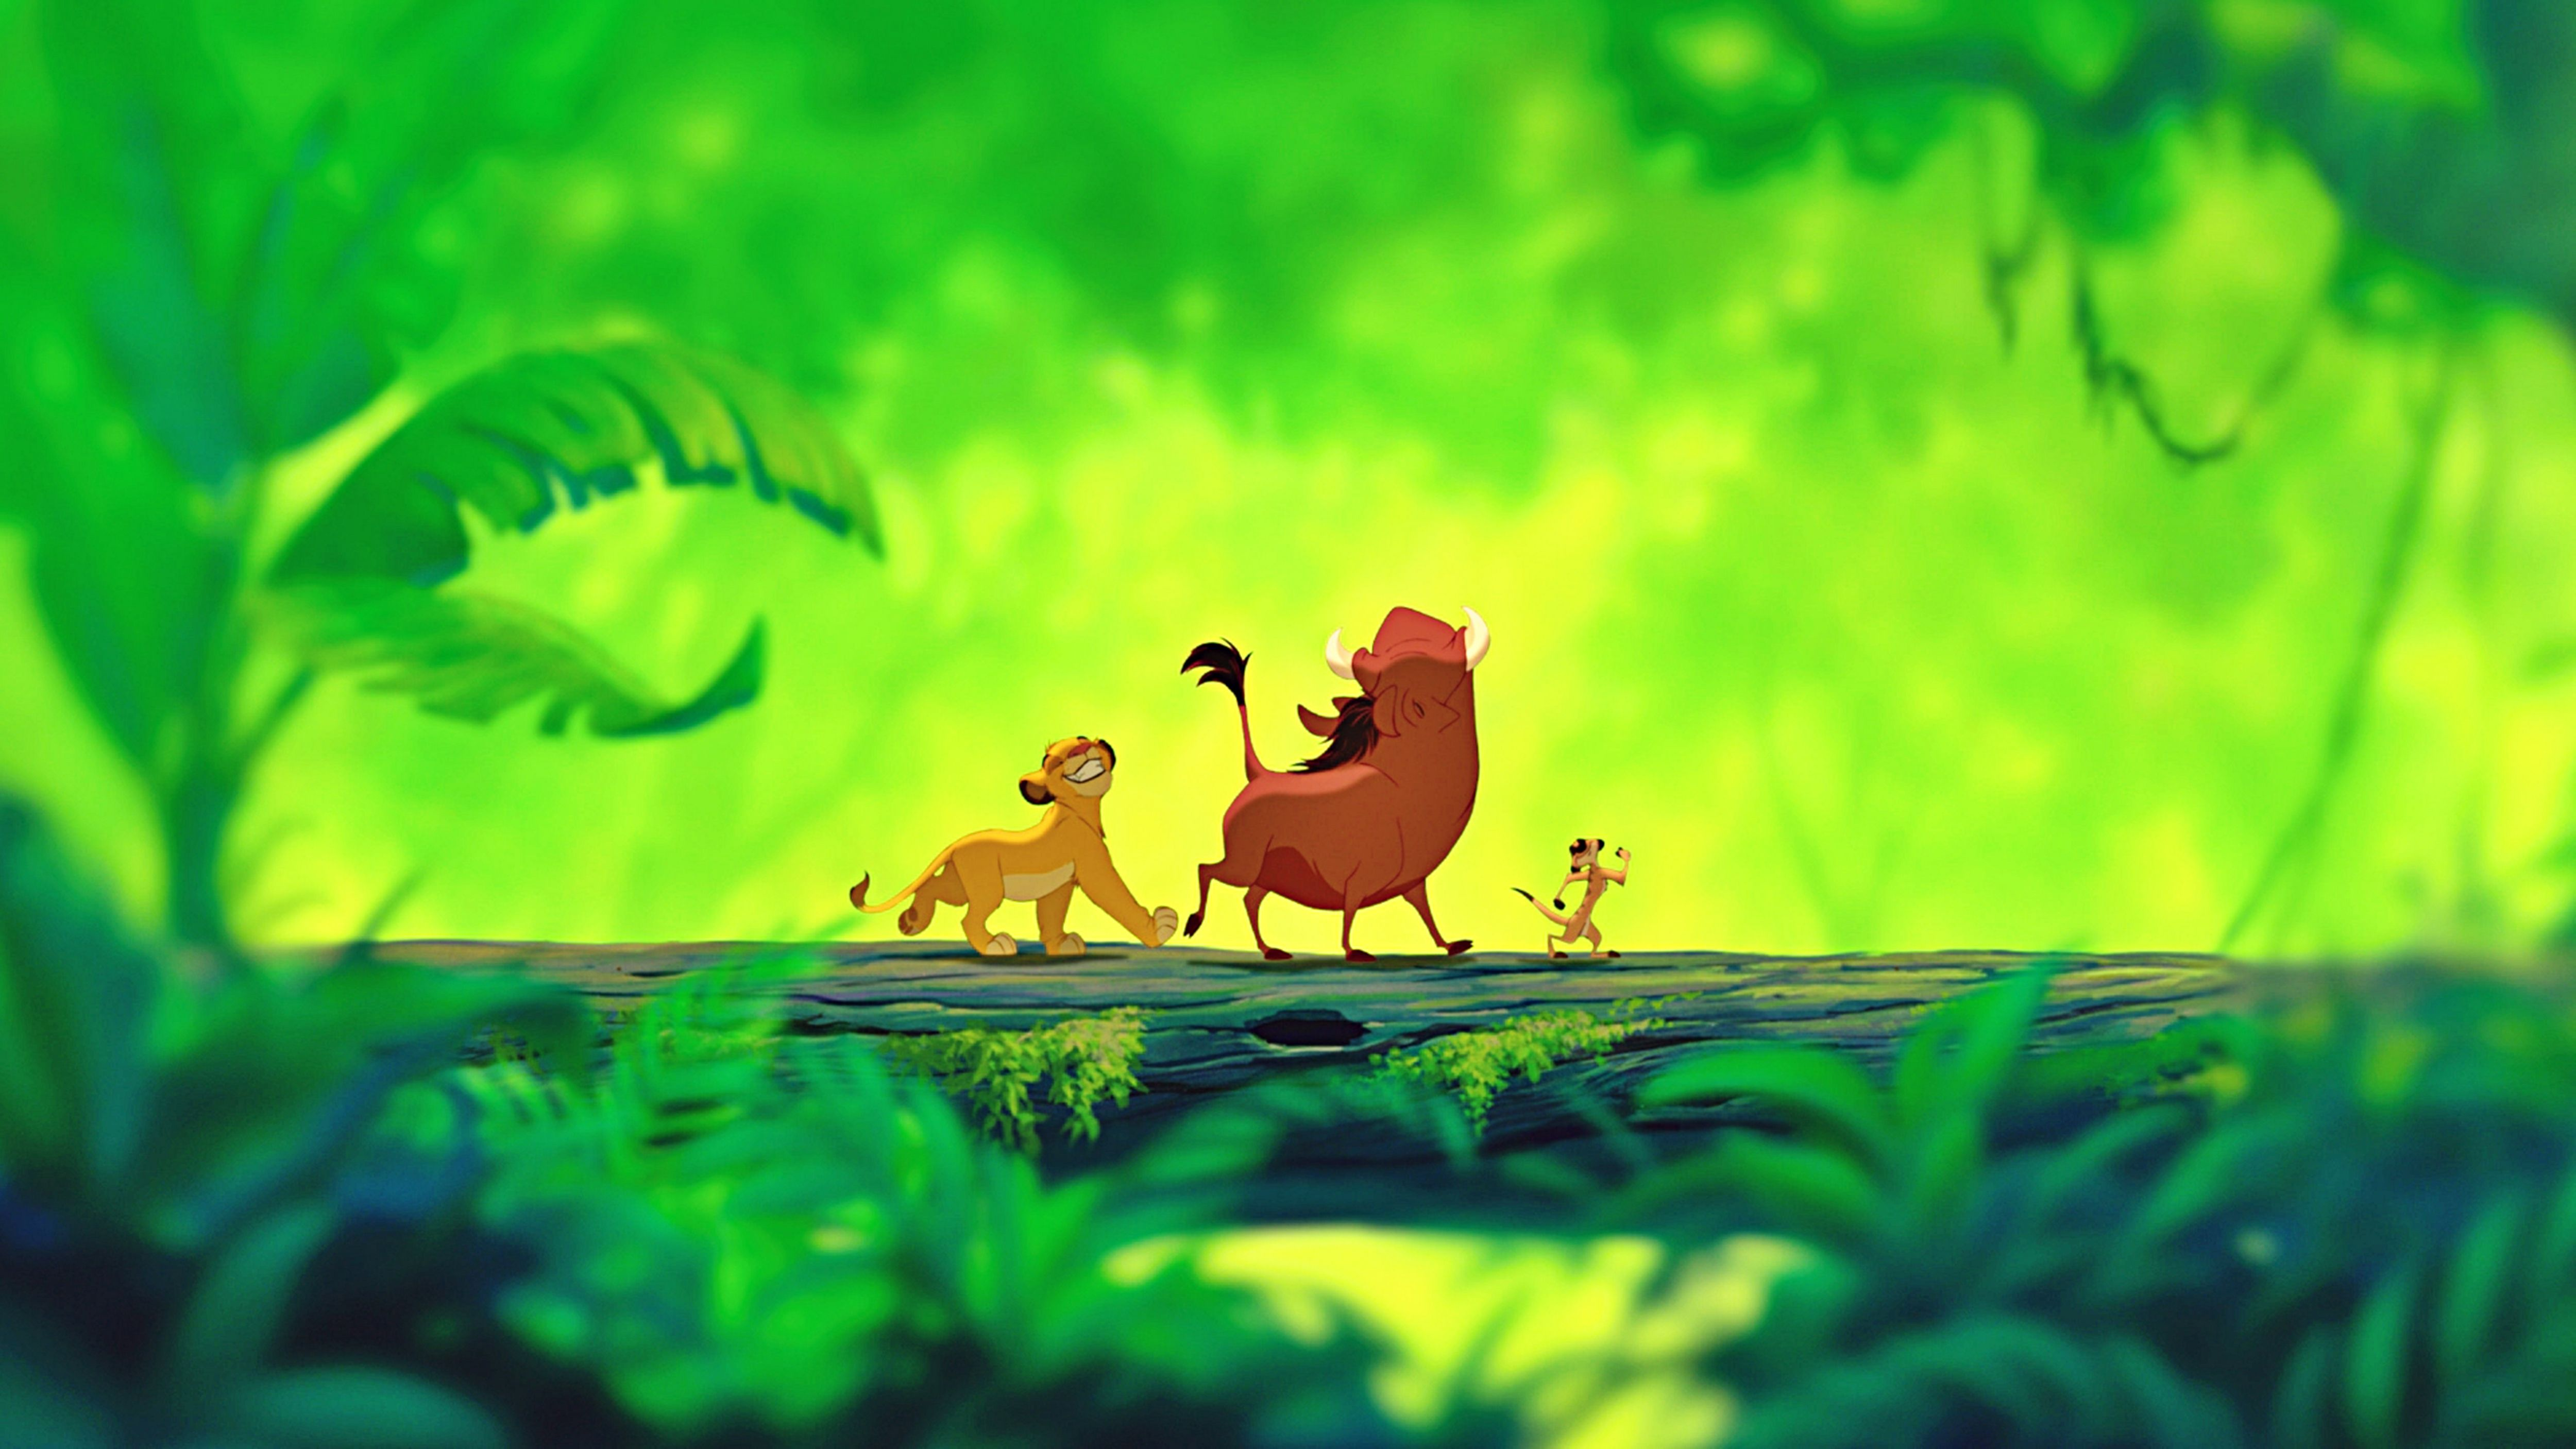 Walt Disney Screencapture of Simba, Pumbaa and Timon from ...